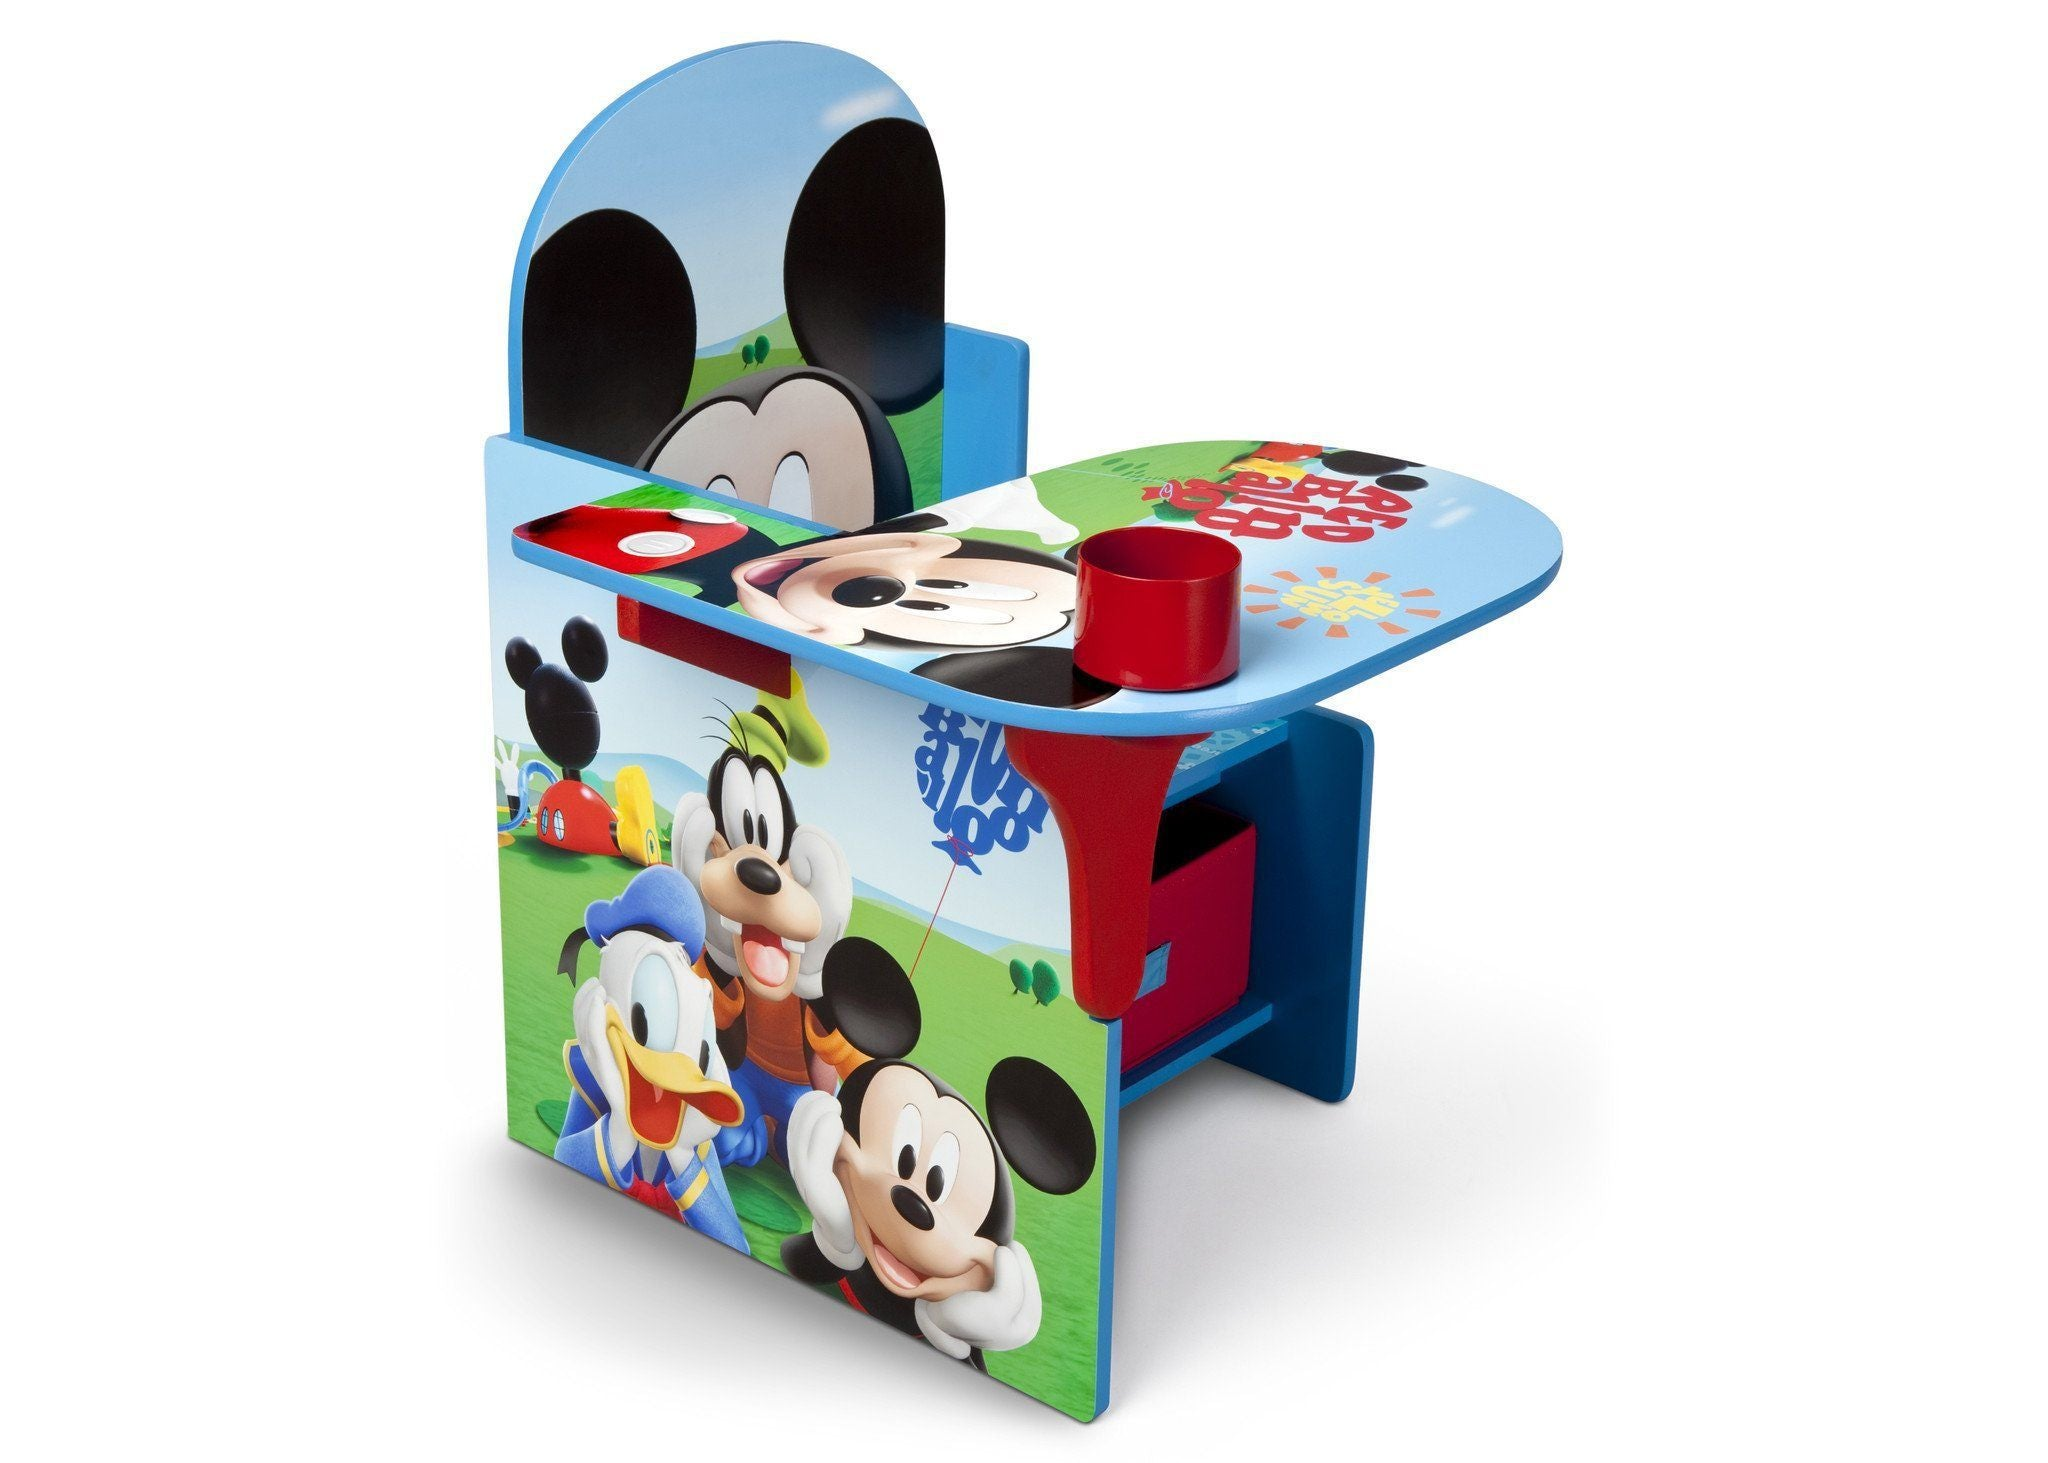 Bon Delta Children Mickey Mouse Chair Desk With Storage Bin Right Side View A1a  ...